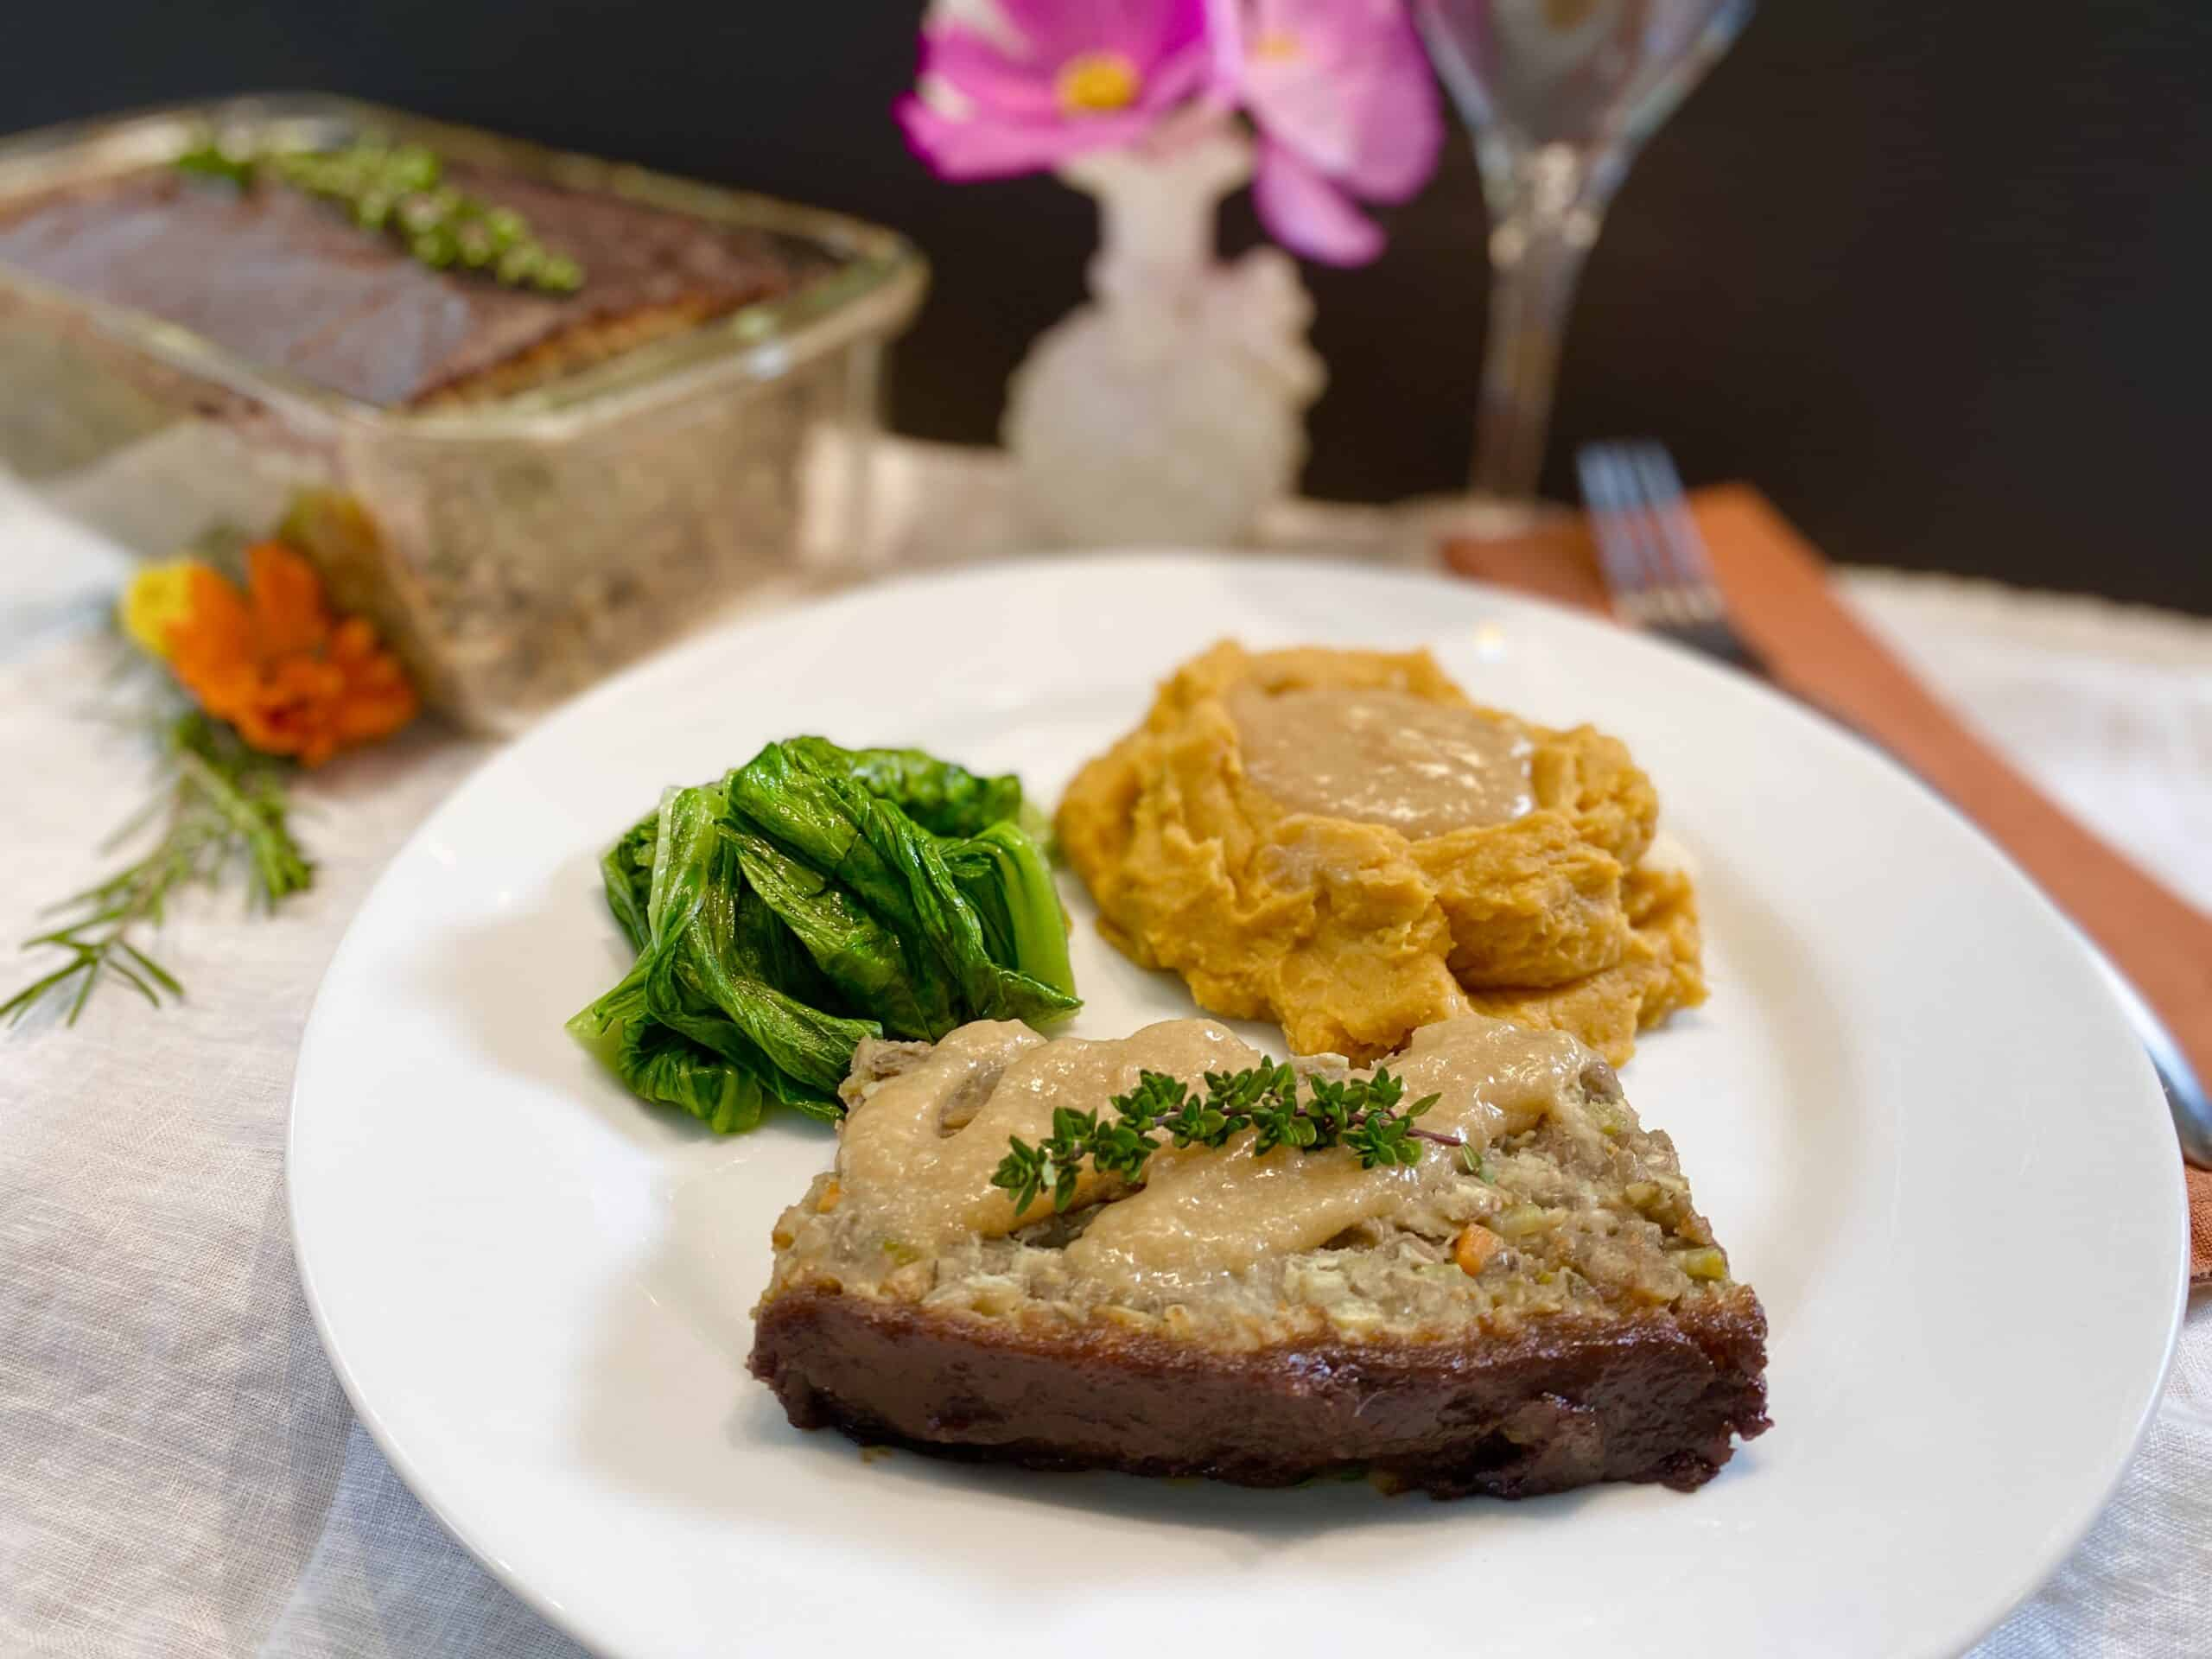 Lentil loaf, mashed sweet potatoes and bok choy on a plate